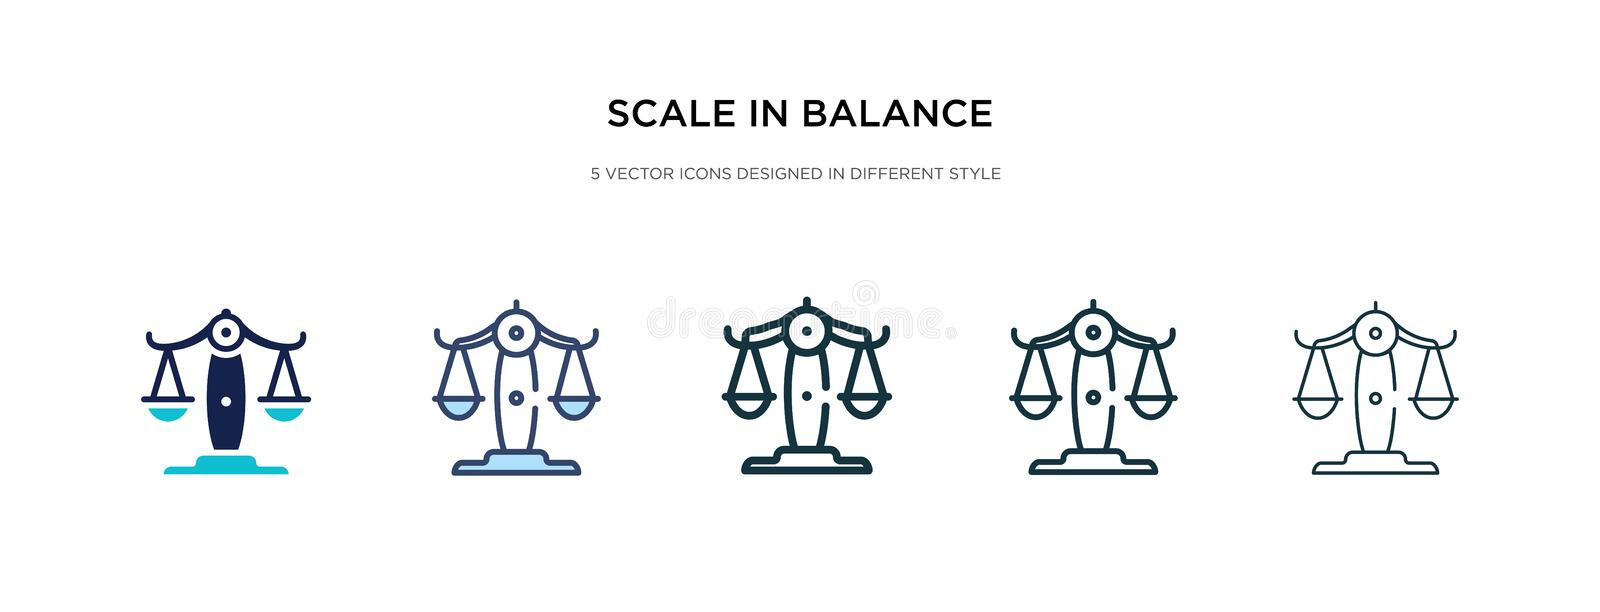 Scale in balance icon in different style vector illustration. two colored and black scale in balance vector icons designed filled. Outline, line and stroke vector illustration